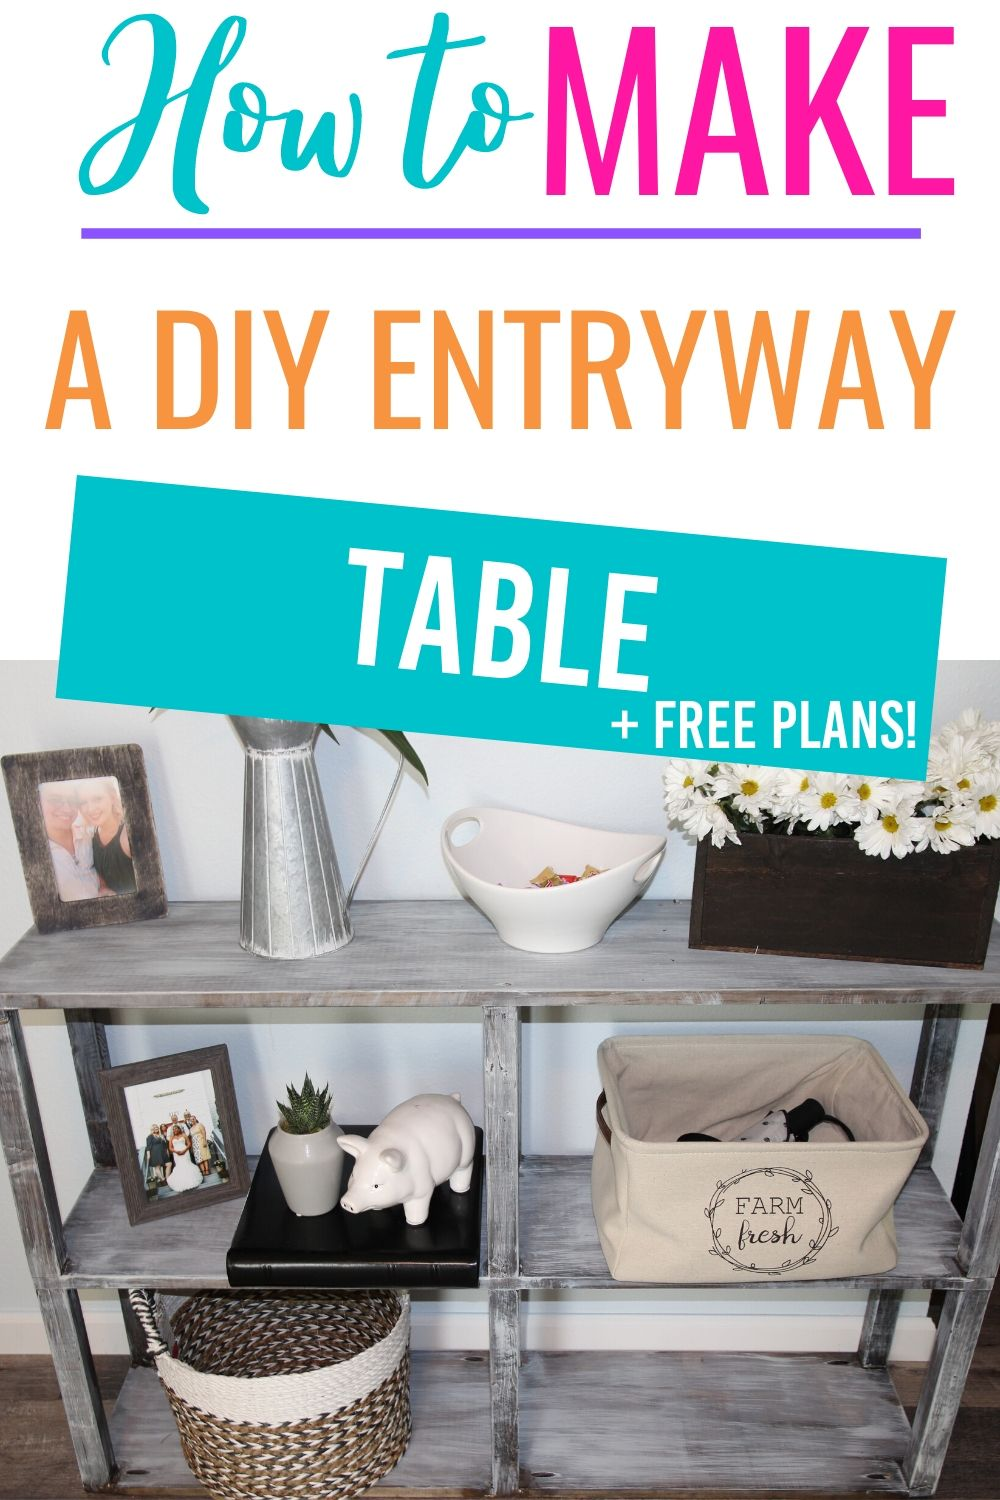 entryway table with flowers and other decor via @homebyjenn